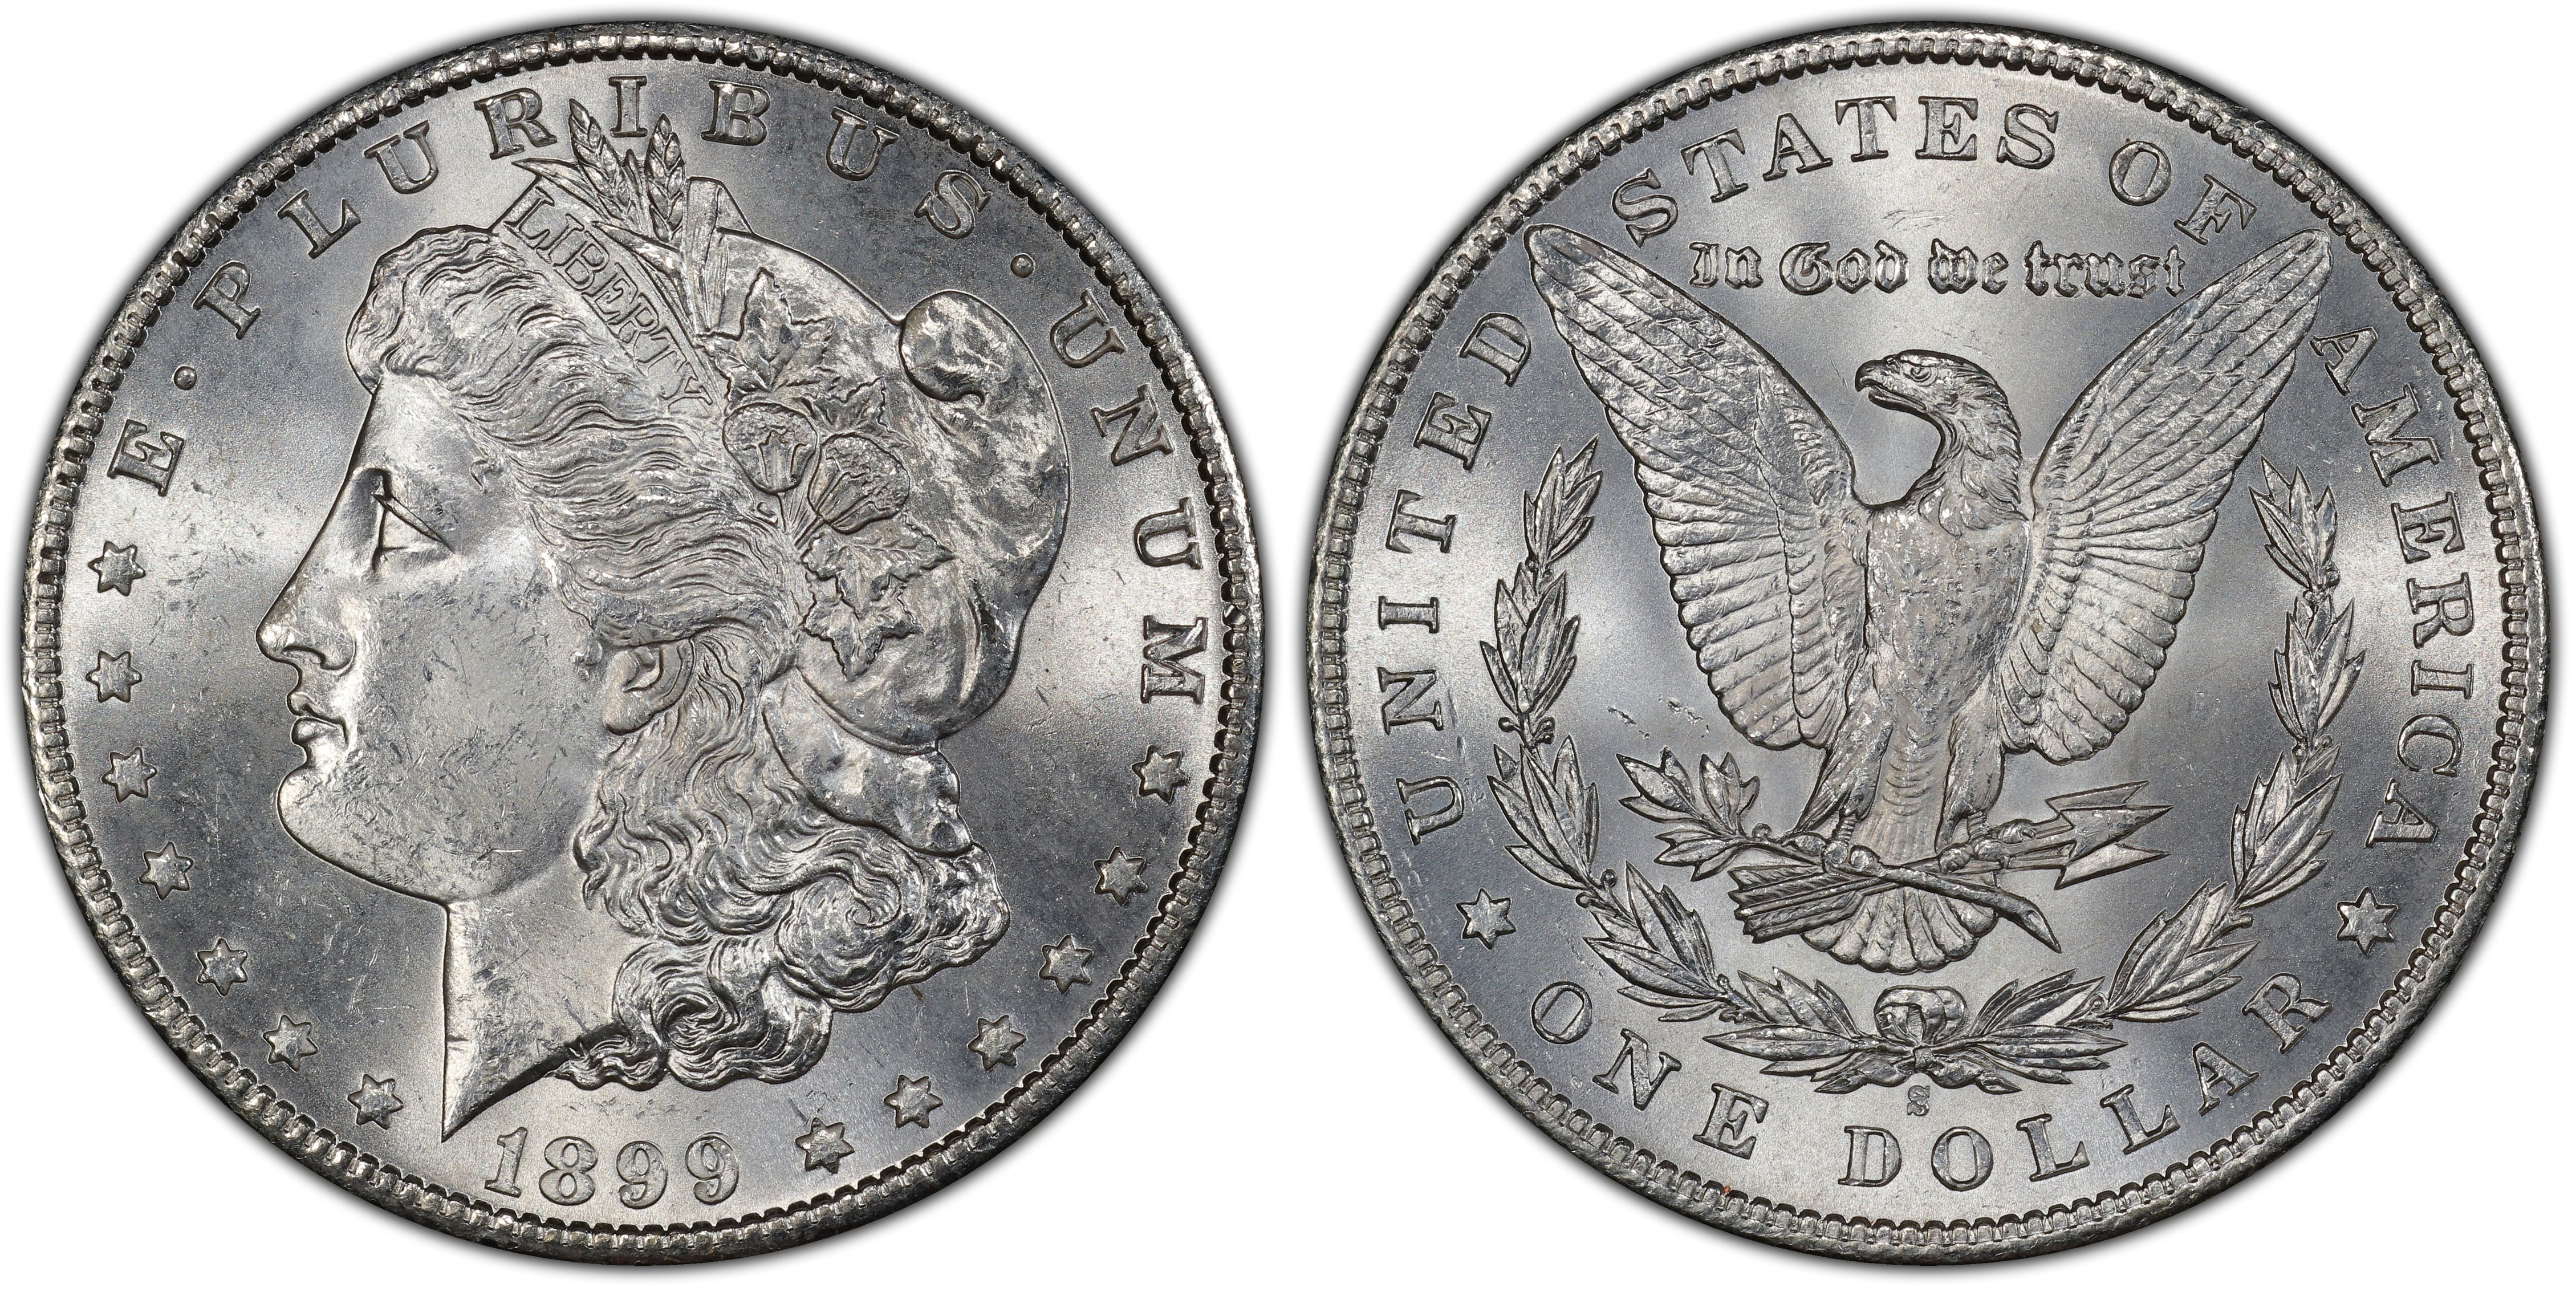 1899-S $1 VAM 7 Doubled Date (Regular Strike) - PCGS CoinFacts